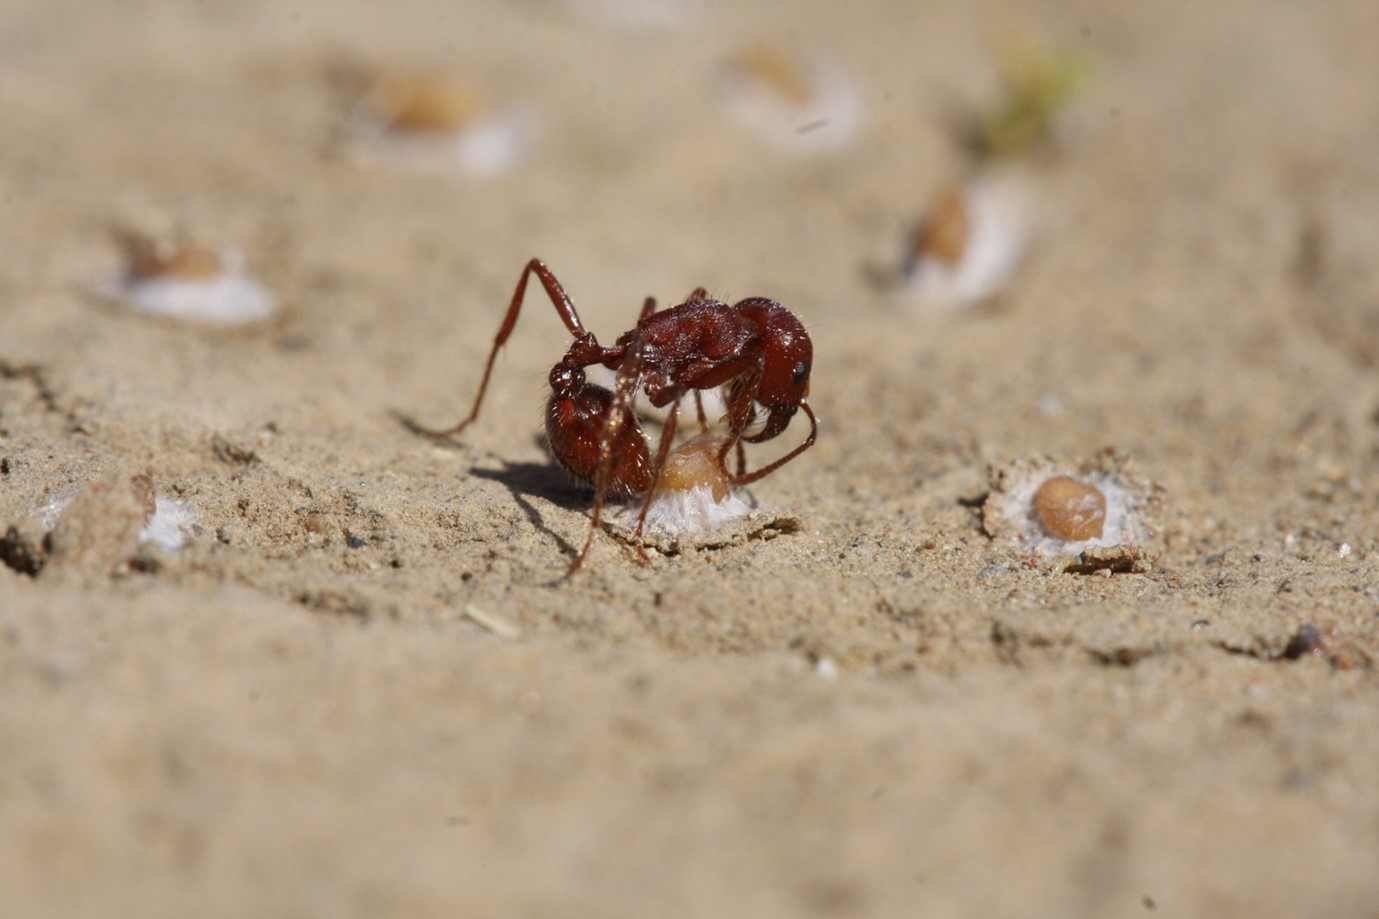 A harvester ant (Pogonomyrmex subdentatus) attempting to dislodge a mucilage anchored seed (Gilia leptantha). Photo by Eric LoPresti.